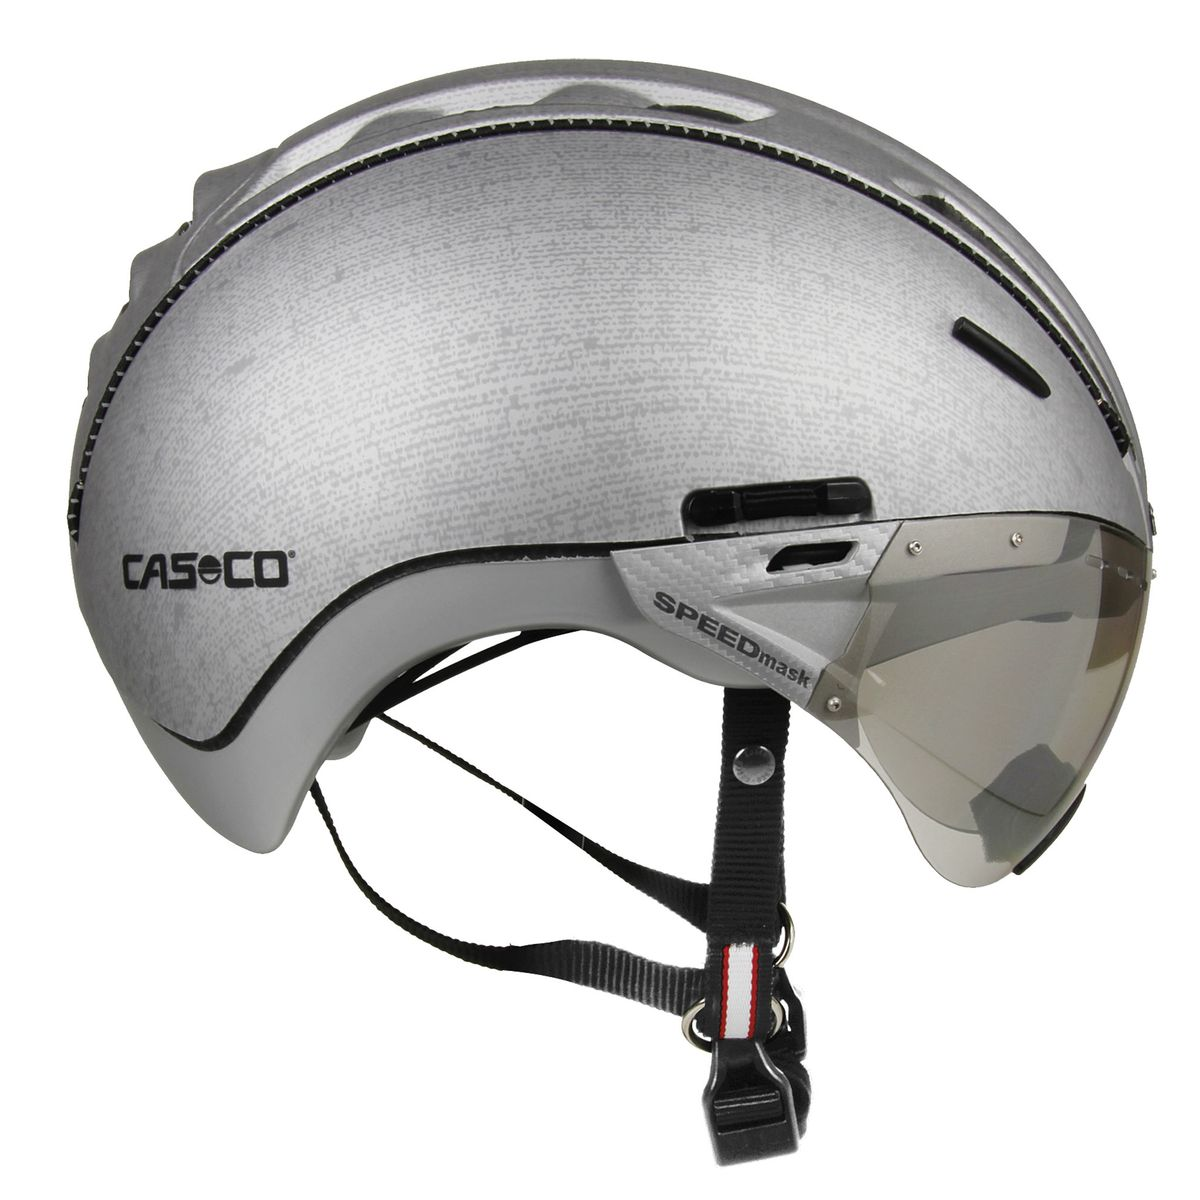 ROADSTER helmet with visor